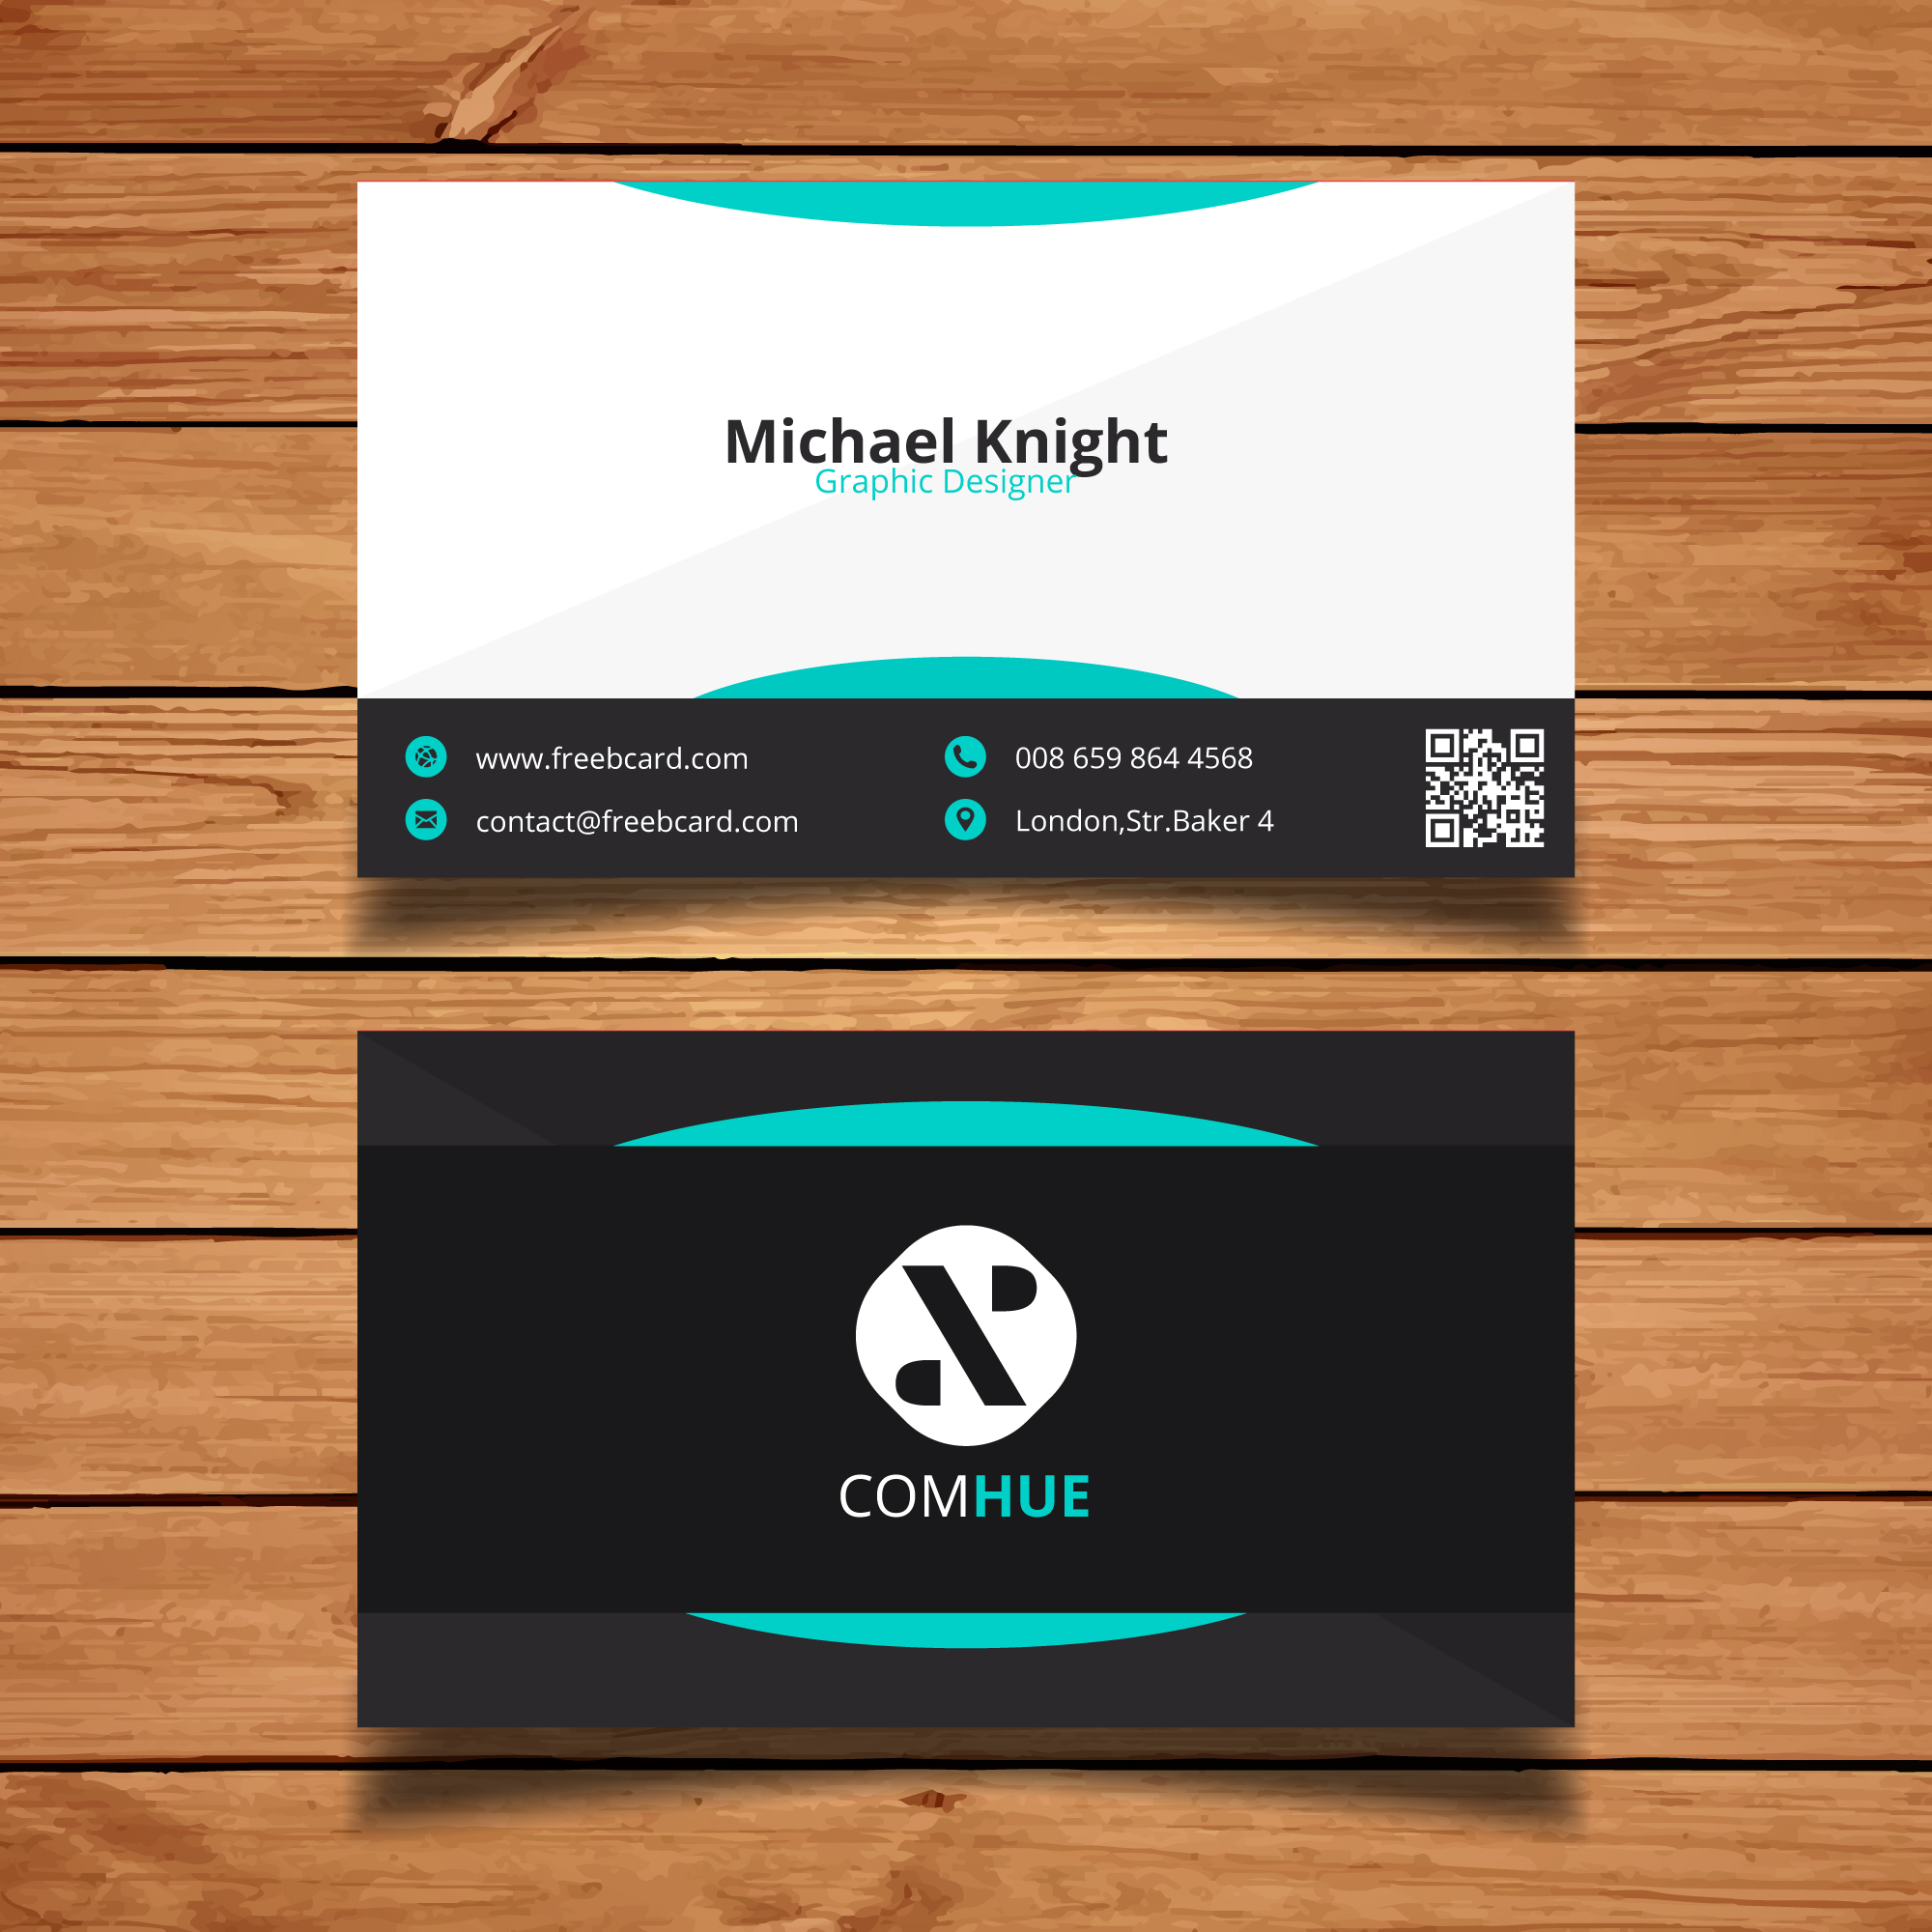 Business card with turquoise abstract shapes